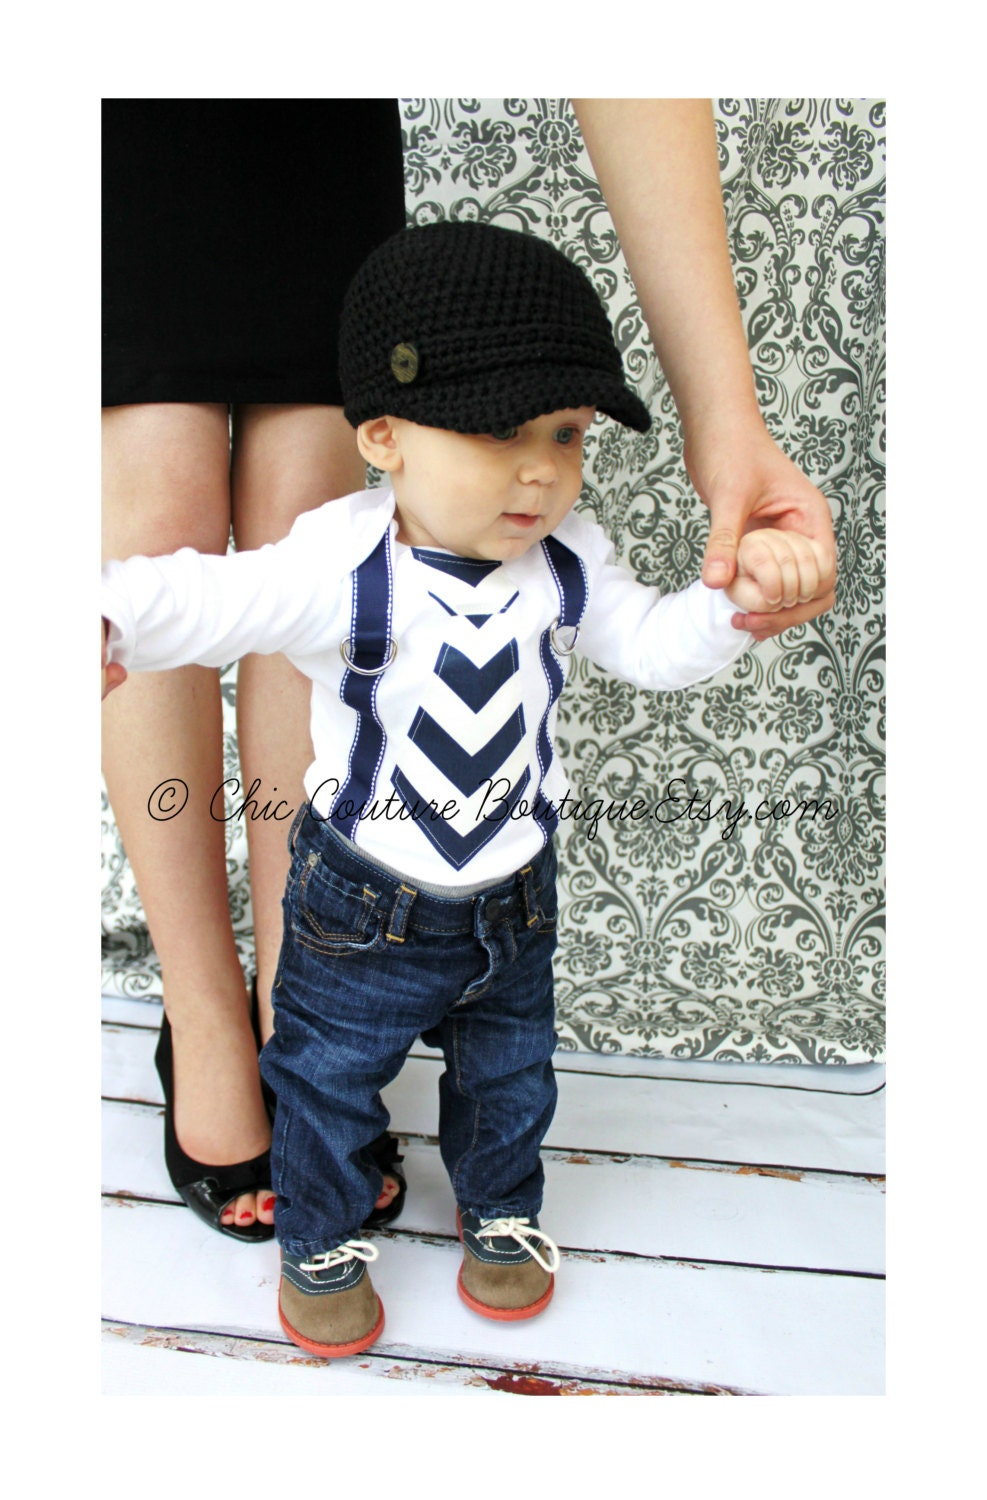 Accessories for a Baby Boy. Hats are a great accessory for children. During the summer and spring not only do they protect from sun rays but also make a great addition to suit outfits.